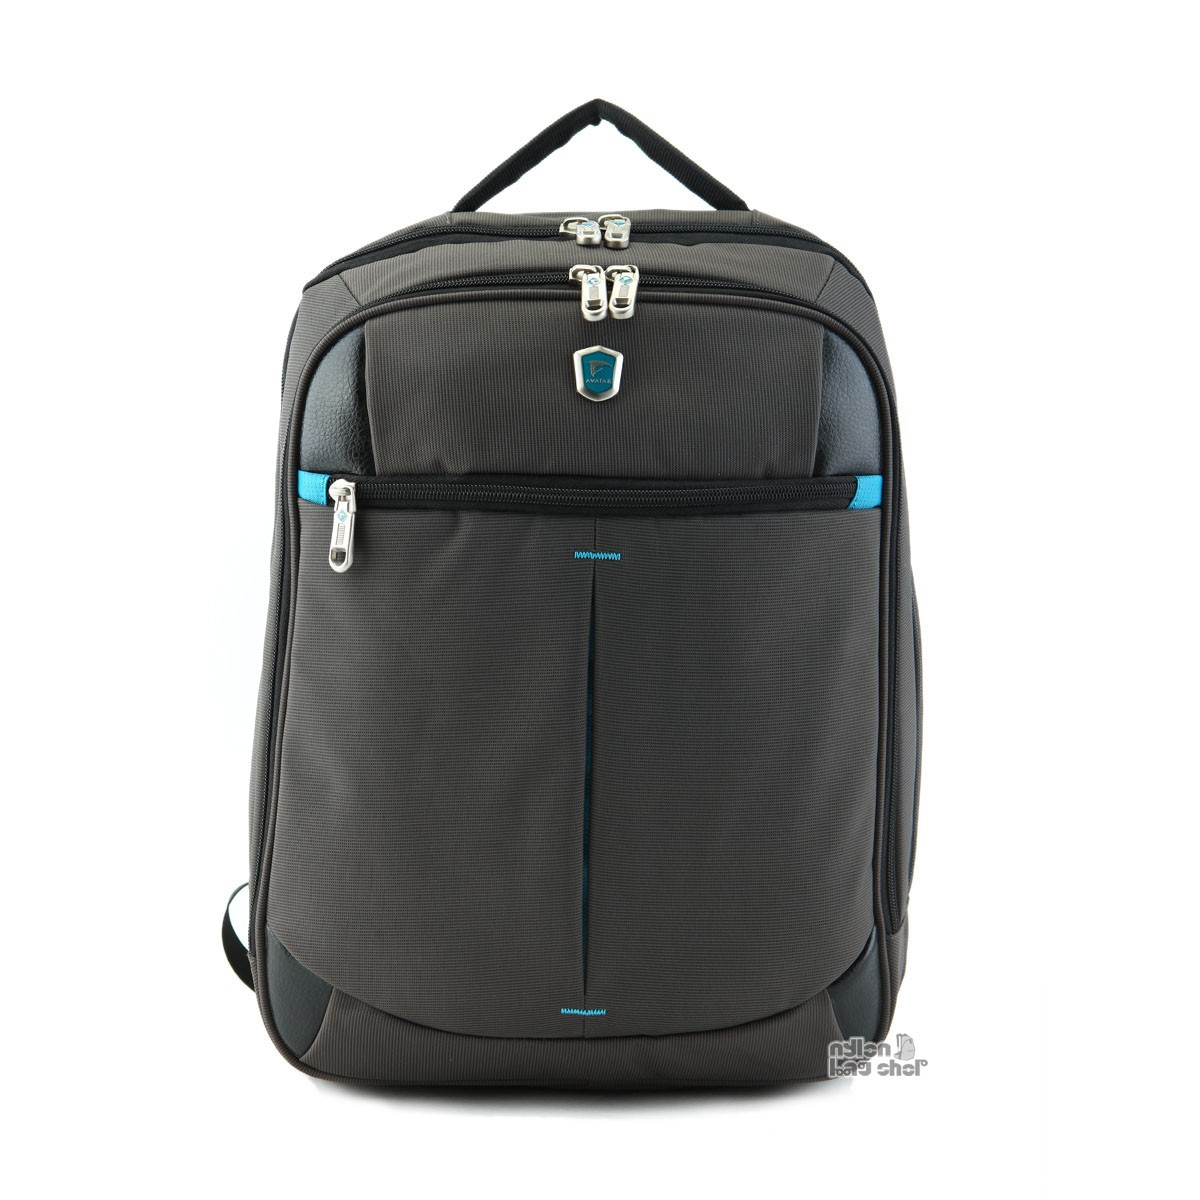 Backpack Laptop Case 1QtOkbaz